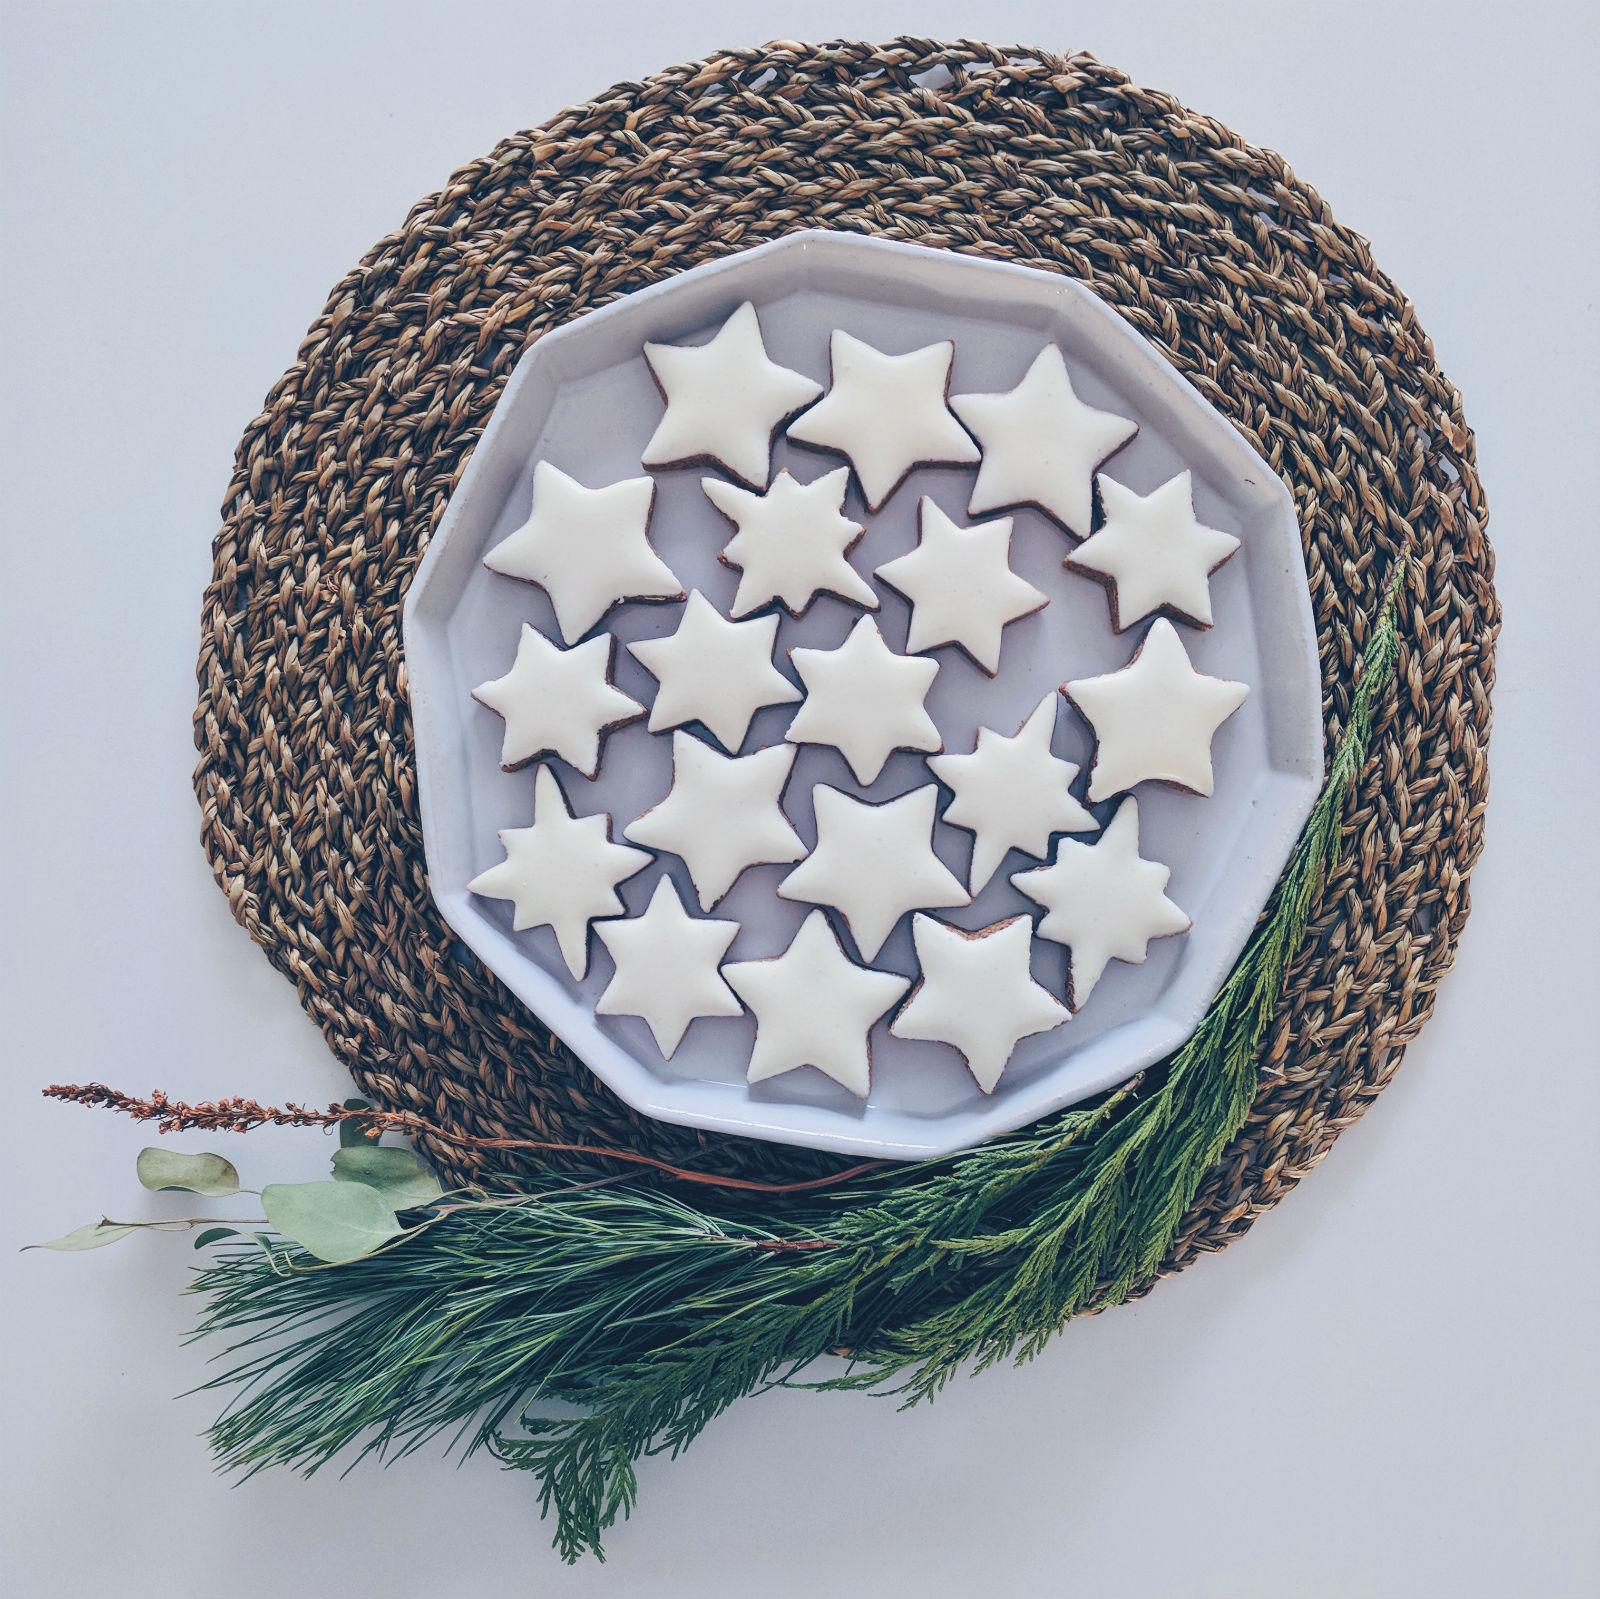 Zimtsterne, cinnamon stars, are a type of German Christmas cookie.